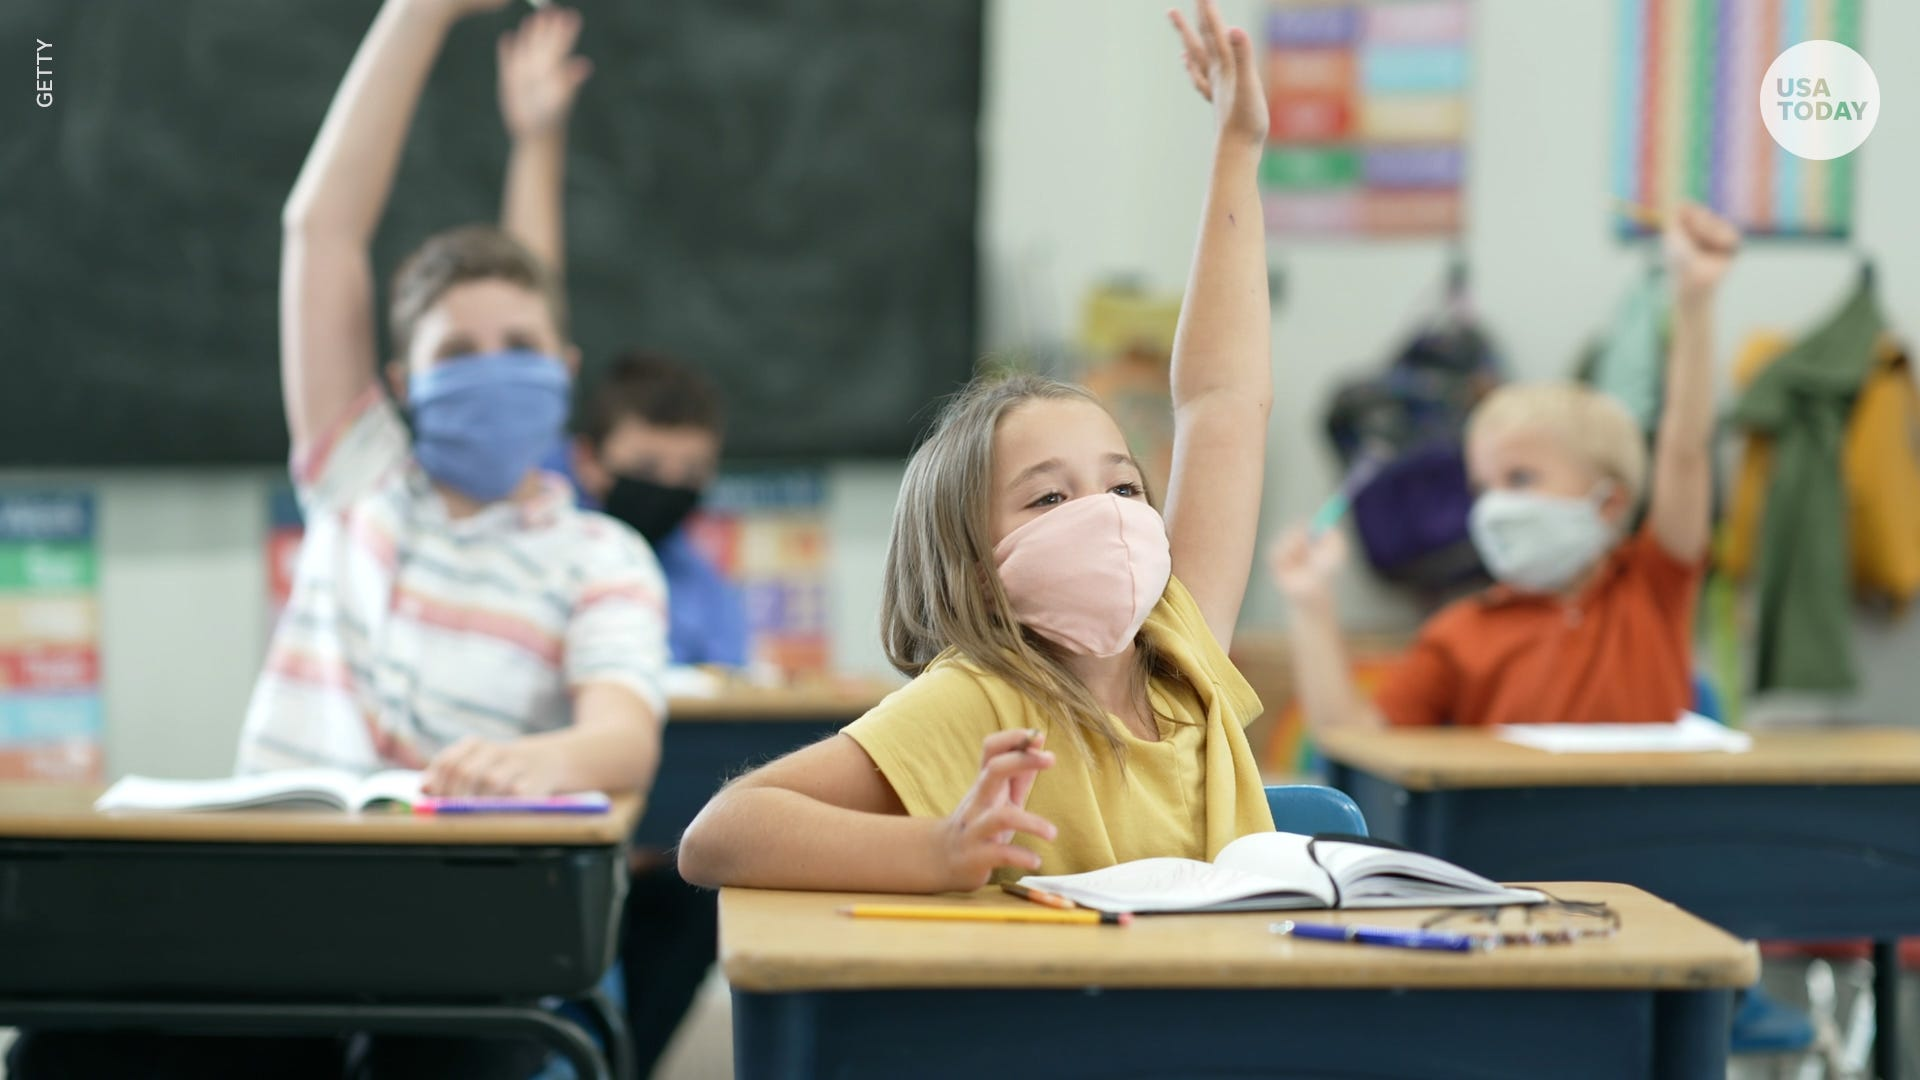 COVID vaccine for kids 5-11: Pfizer says low dose safe, effective